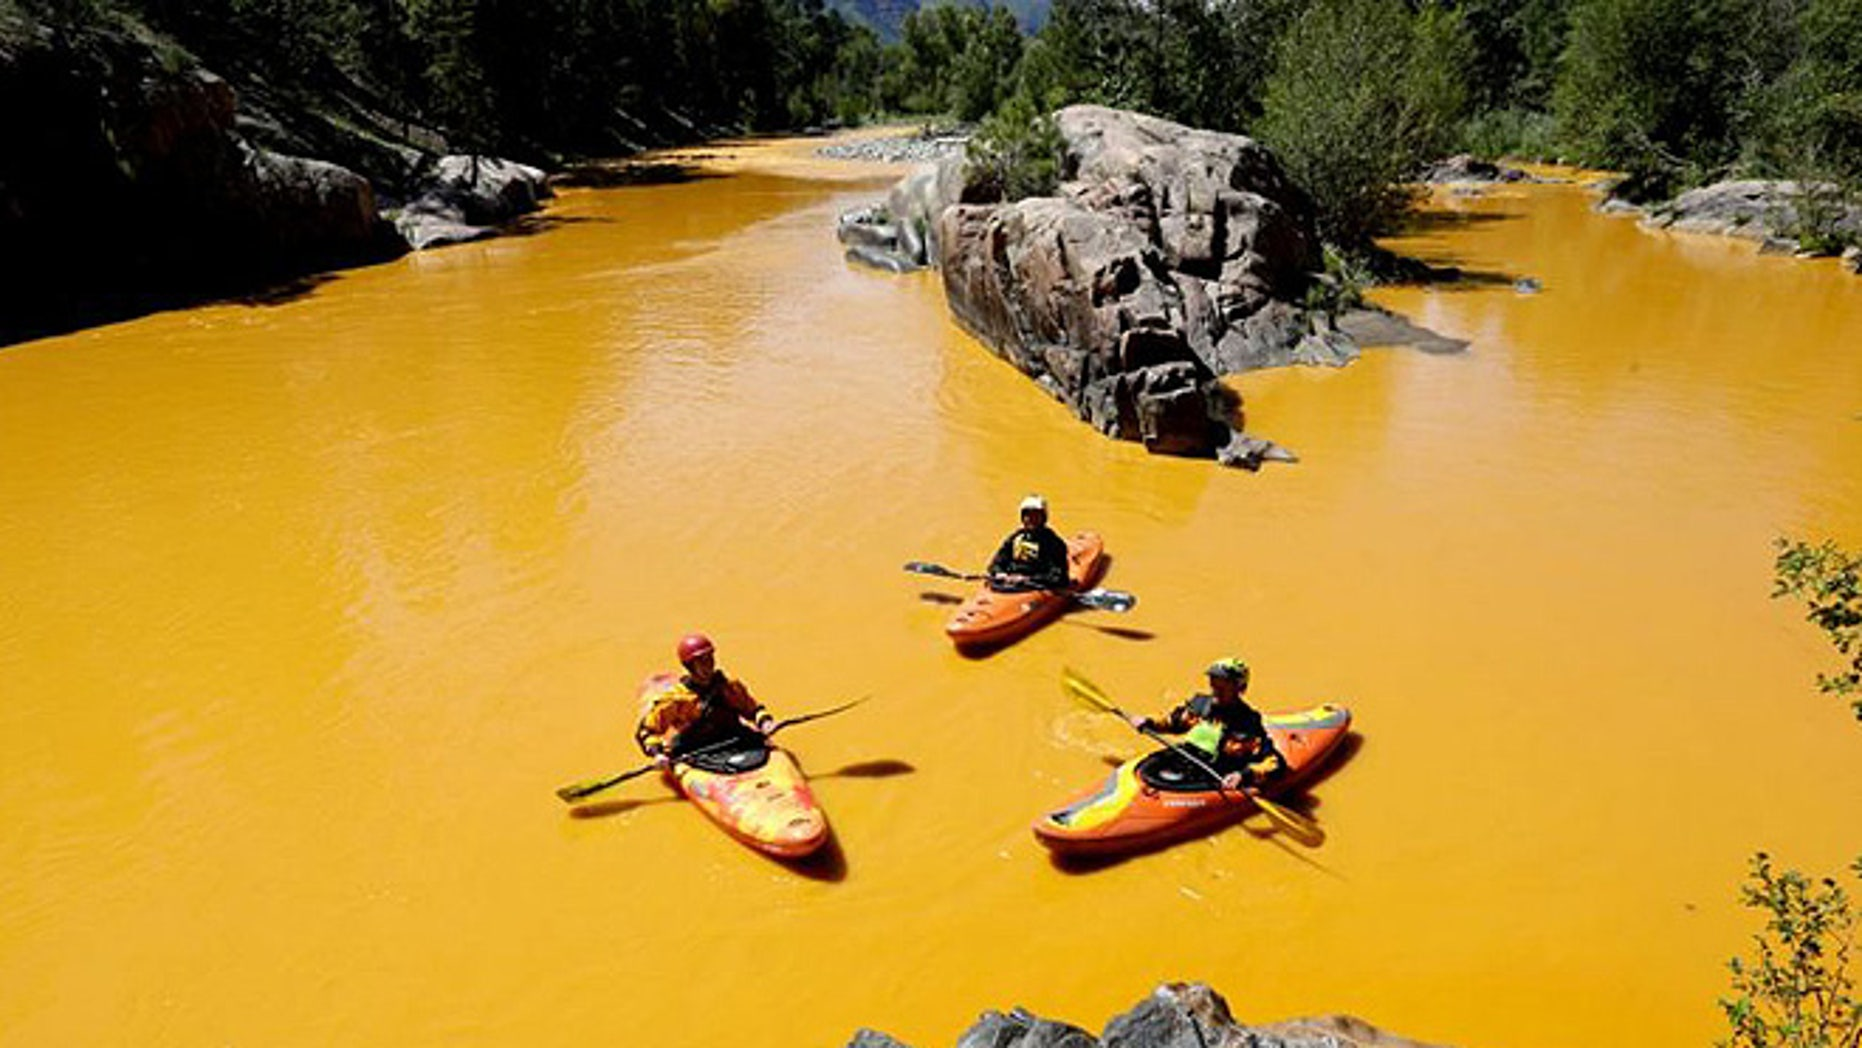 The House Committee on Natural Resources released a damning report on the EPA and how they handled the August 2015 Gold King Mine disaster in Colorado, and its aftermath